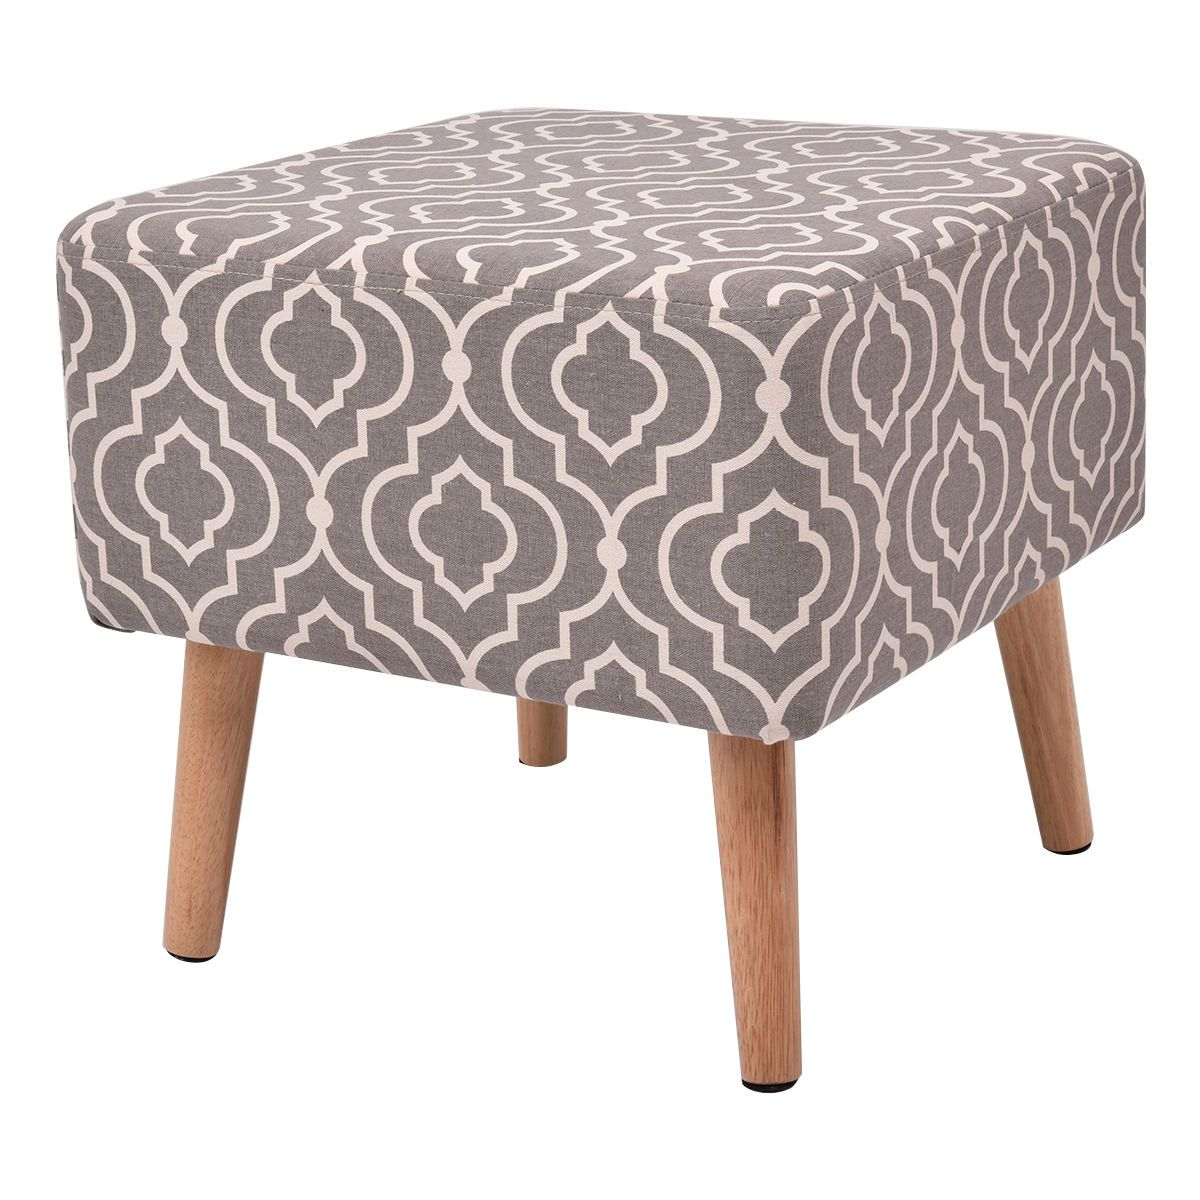 Giantex Square Stool Modern Living Room Seat Footrest Stool Ottoman with 4 Wooden Solid Legs Footstool Home Furniture HW54452